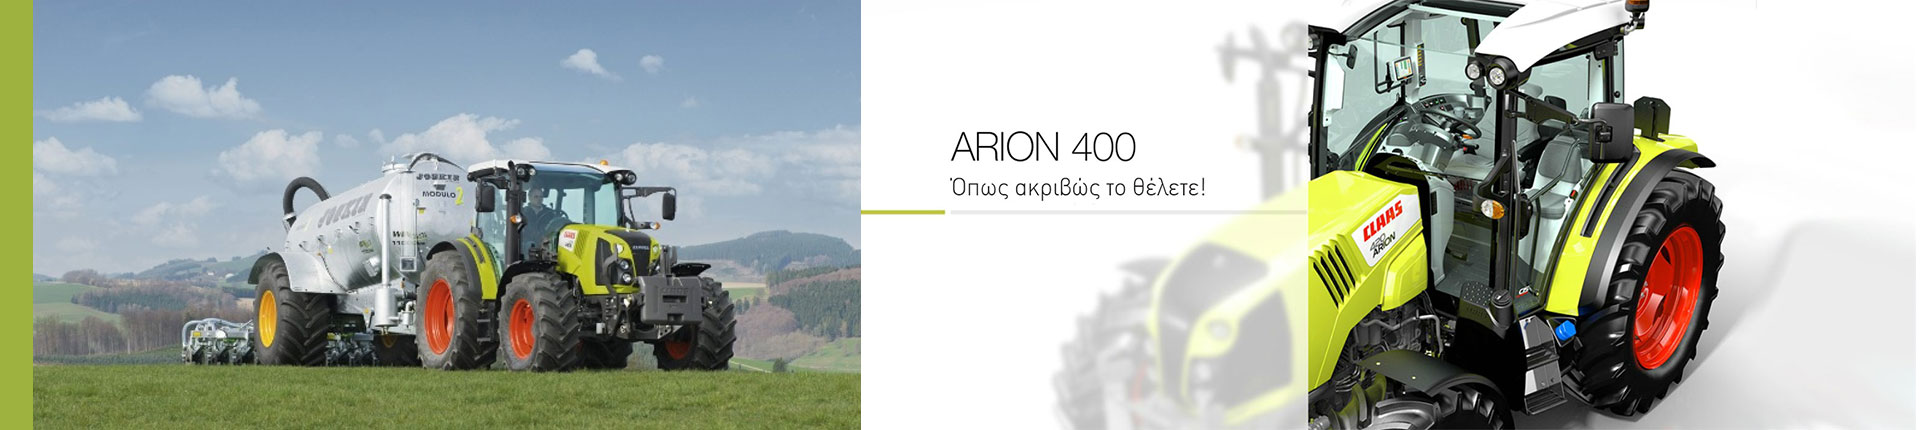 arion2